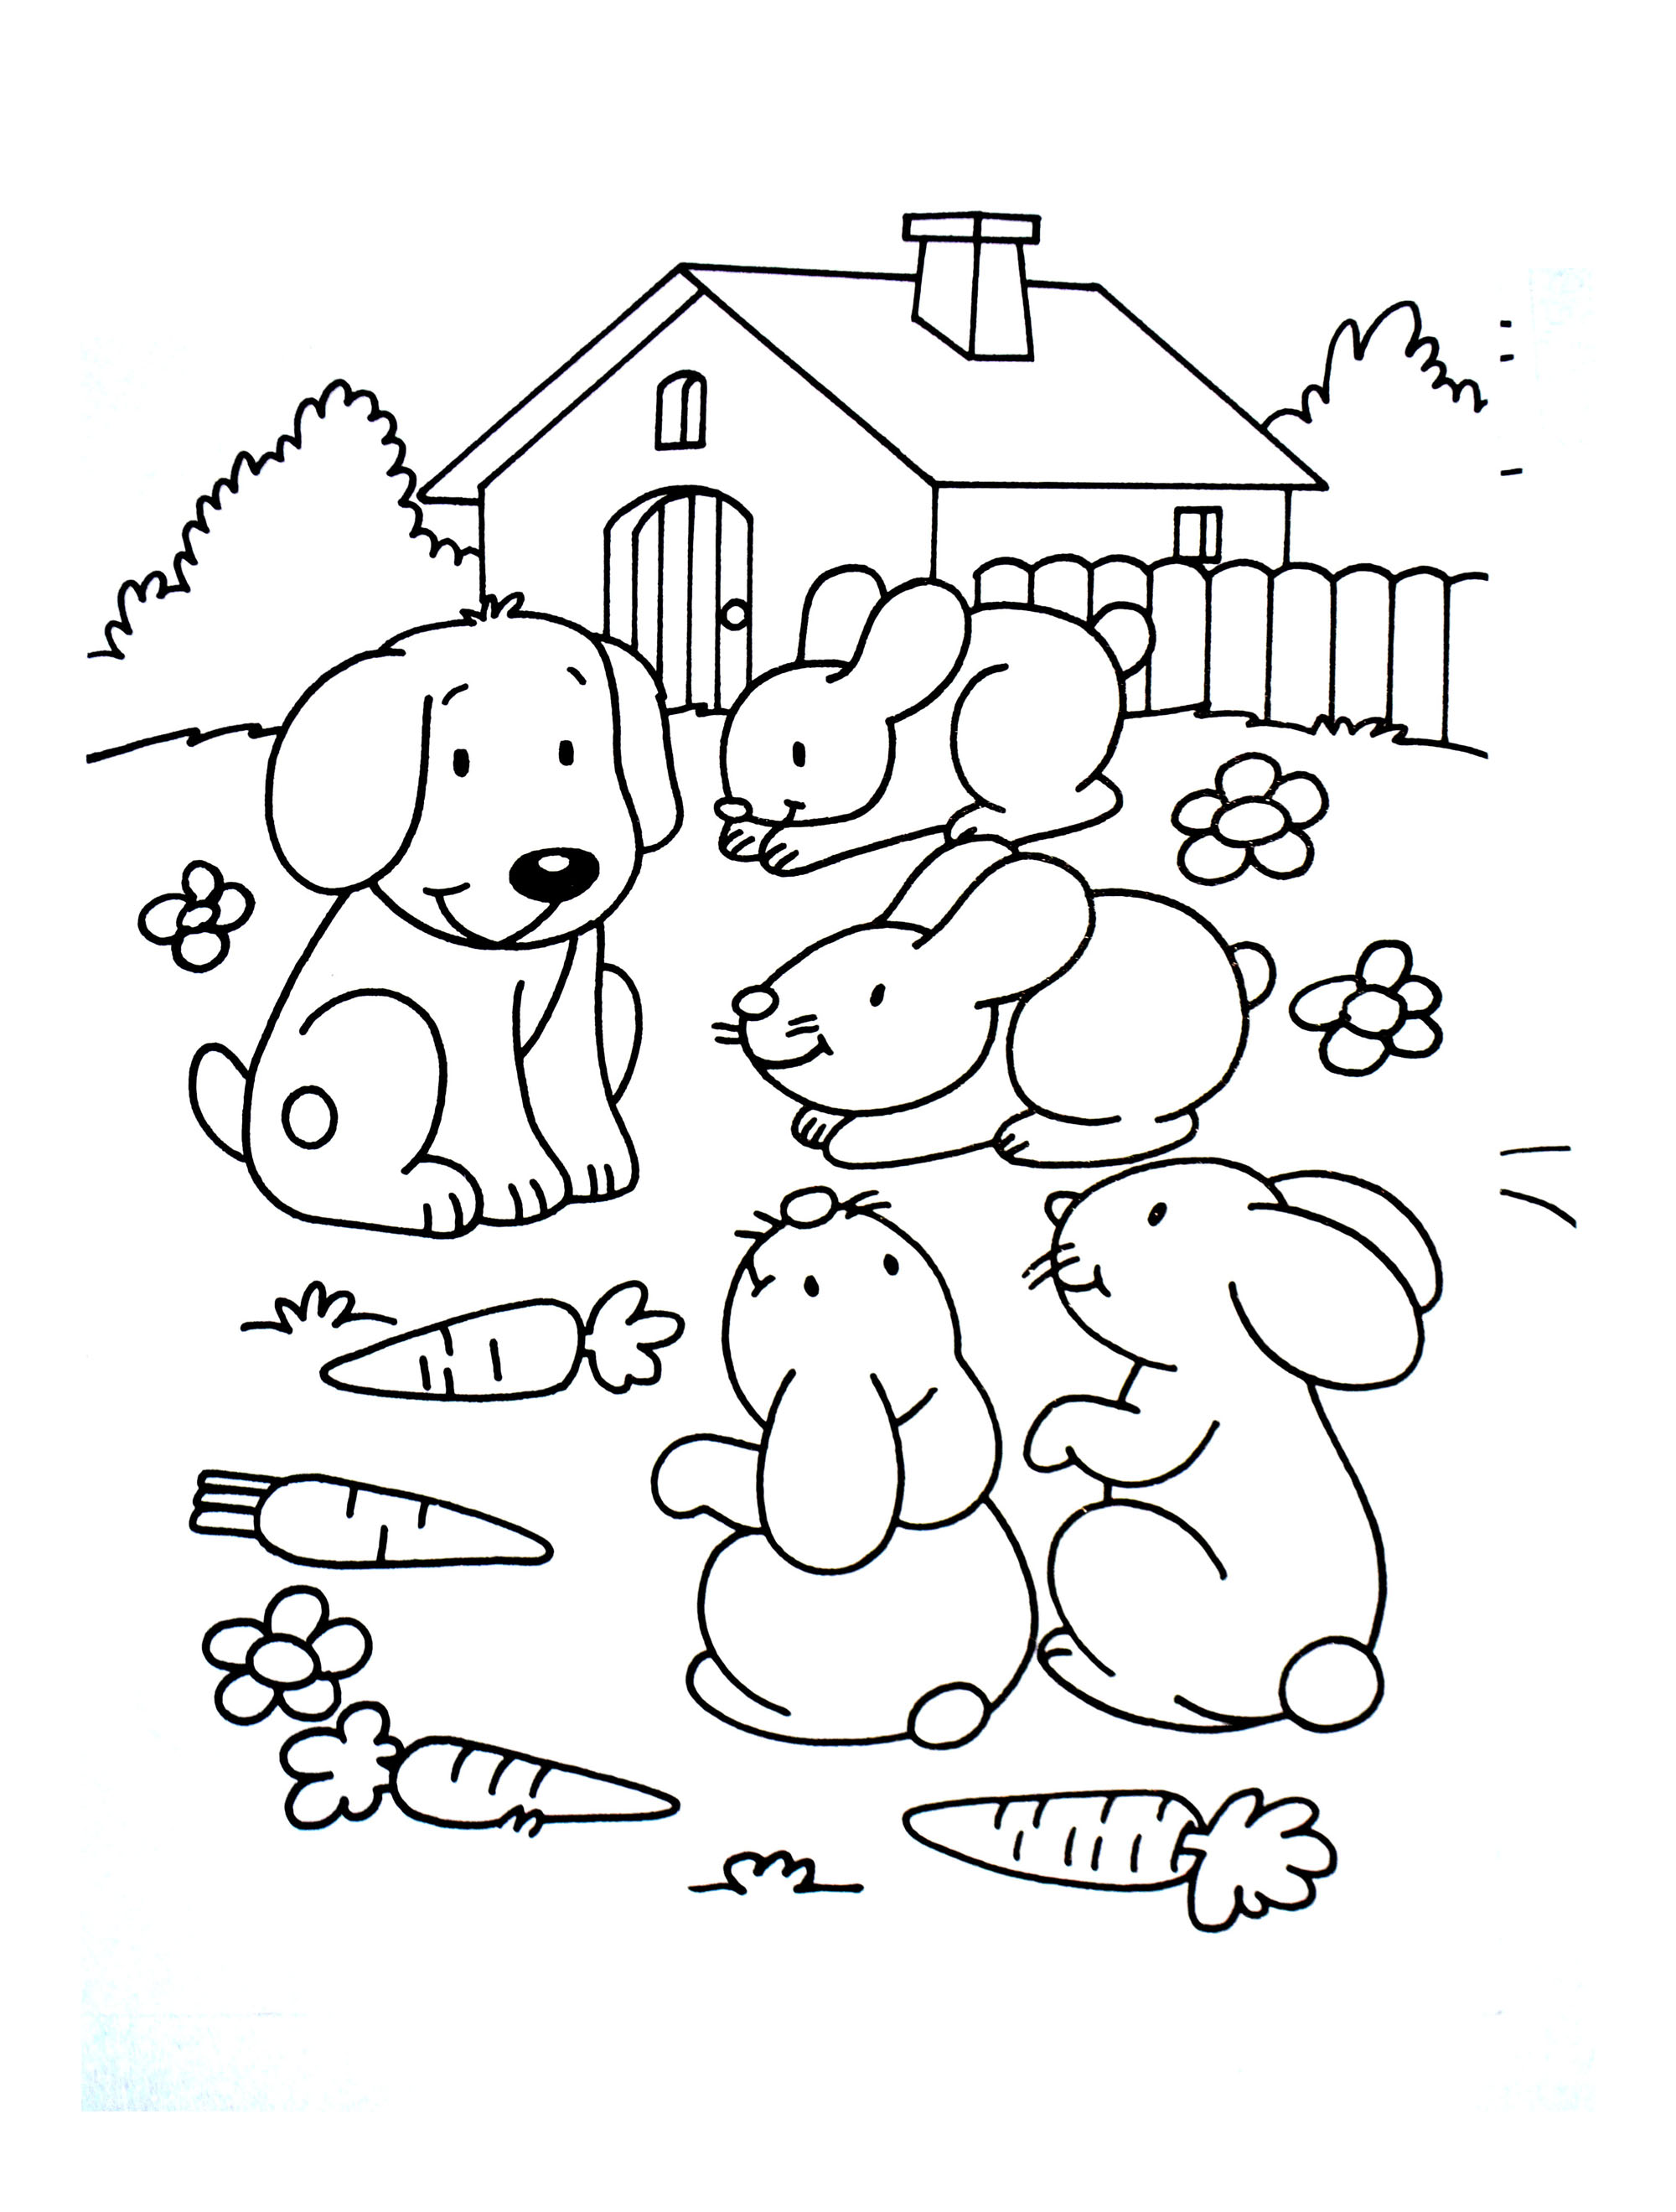 Dogs For Children Dogs Kids Coloring Pages